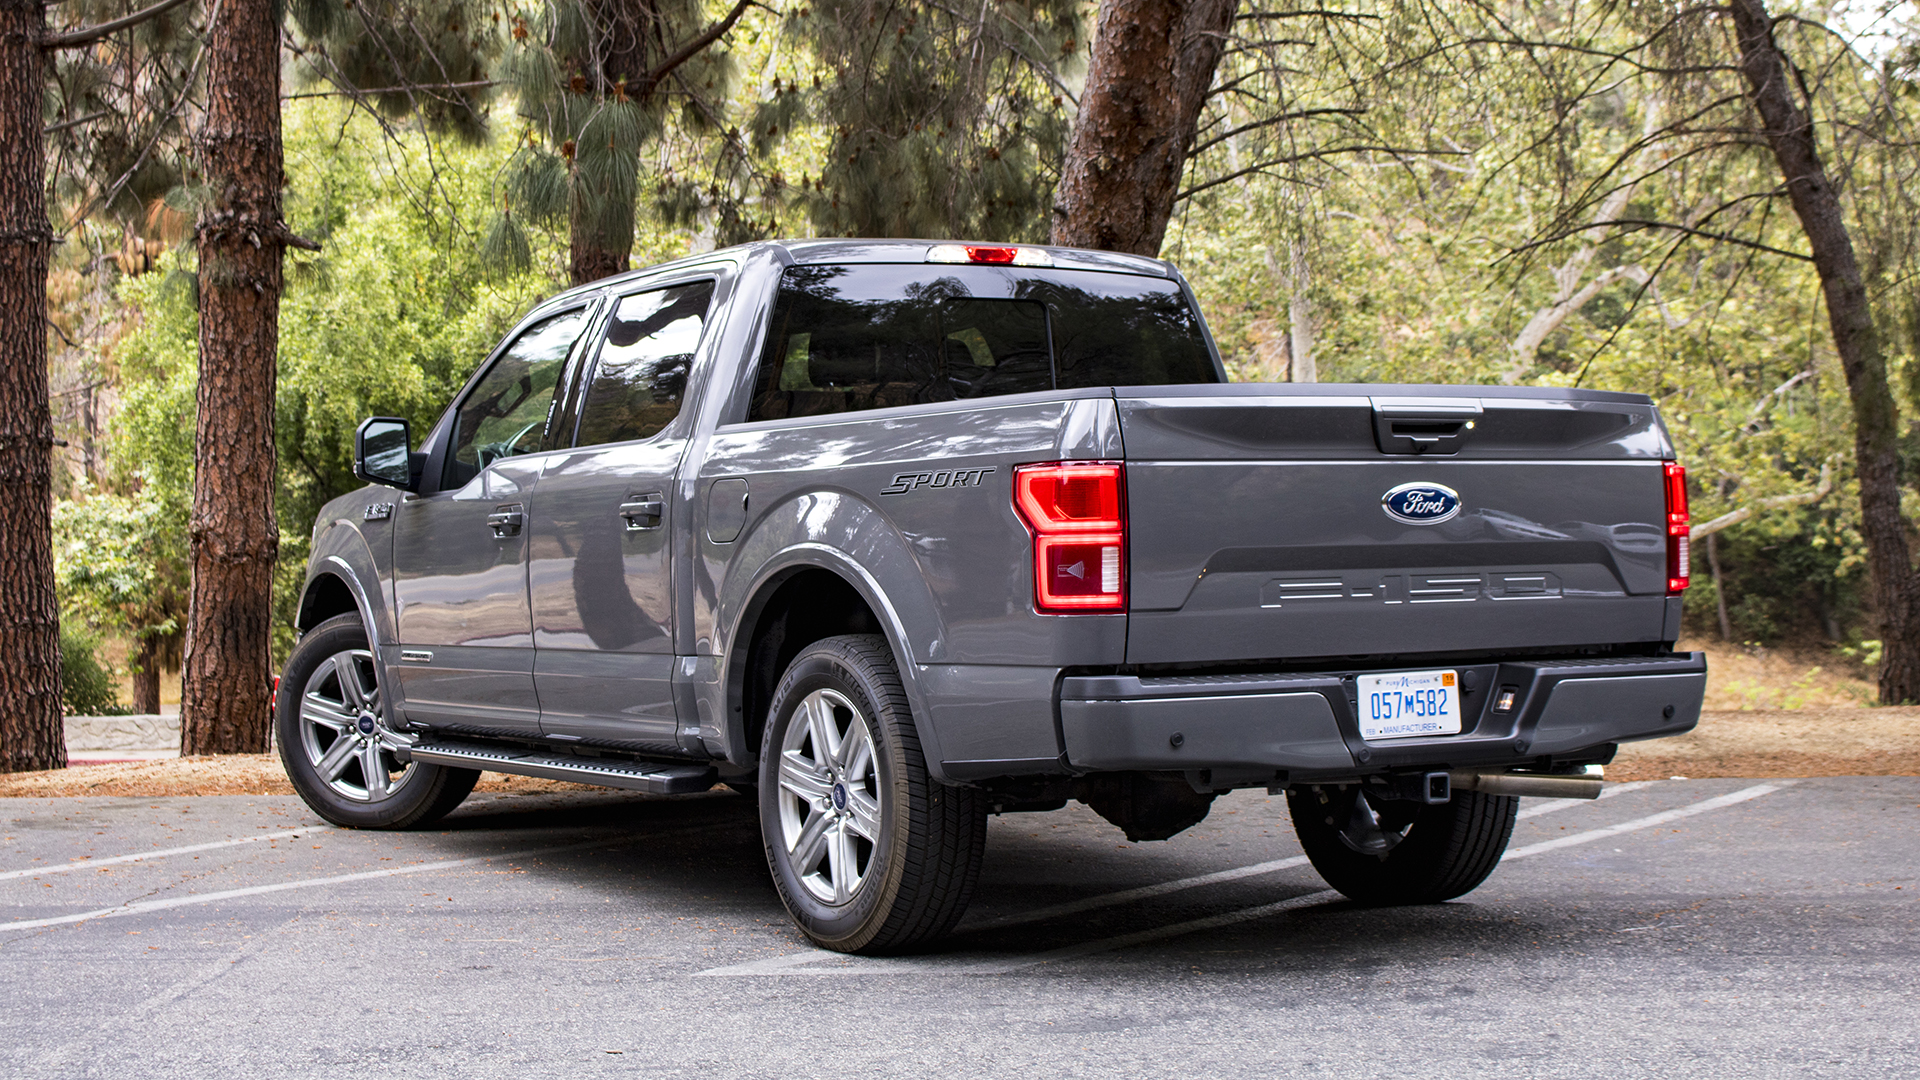 2018 Ford F-150 Diesel Review: How Does 850 Miles on a Single Tank